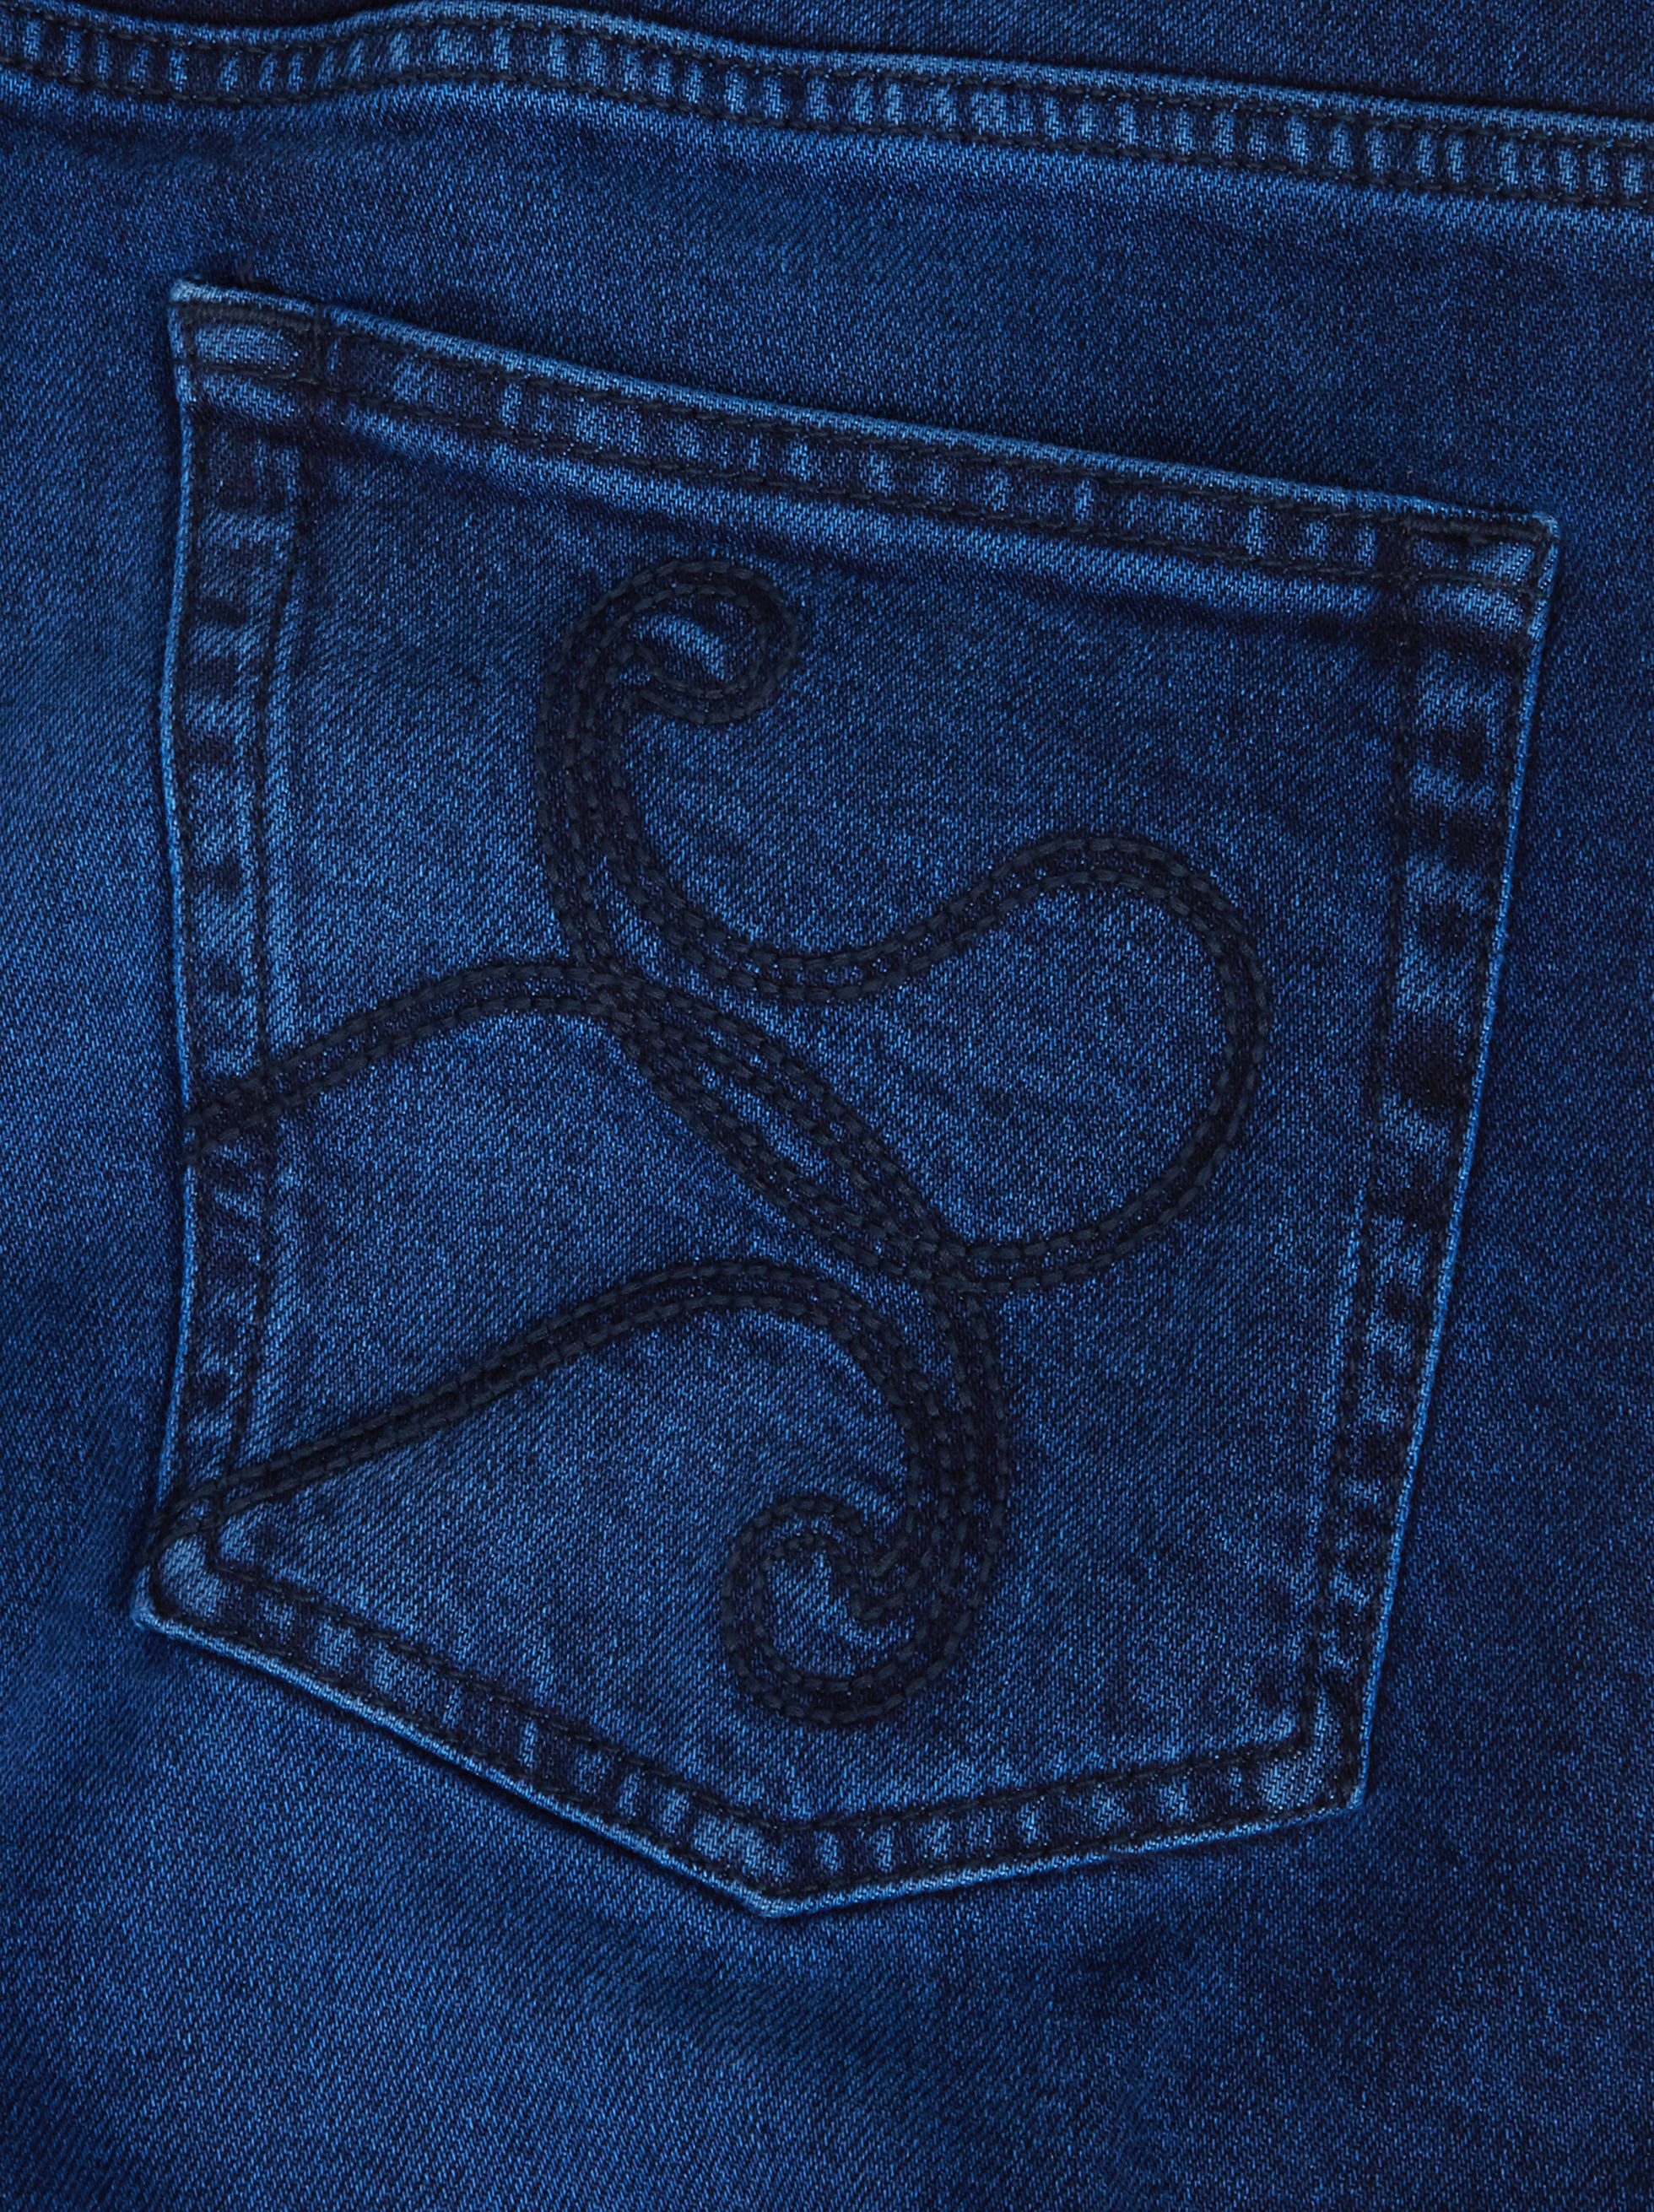 USED EFFECT JEANS